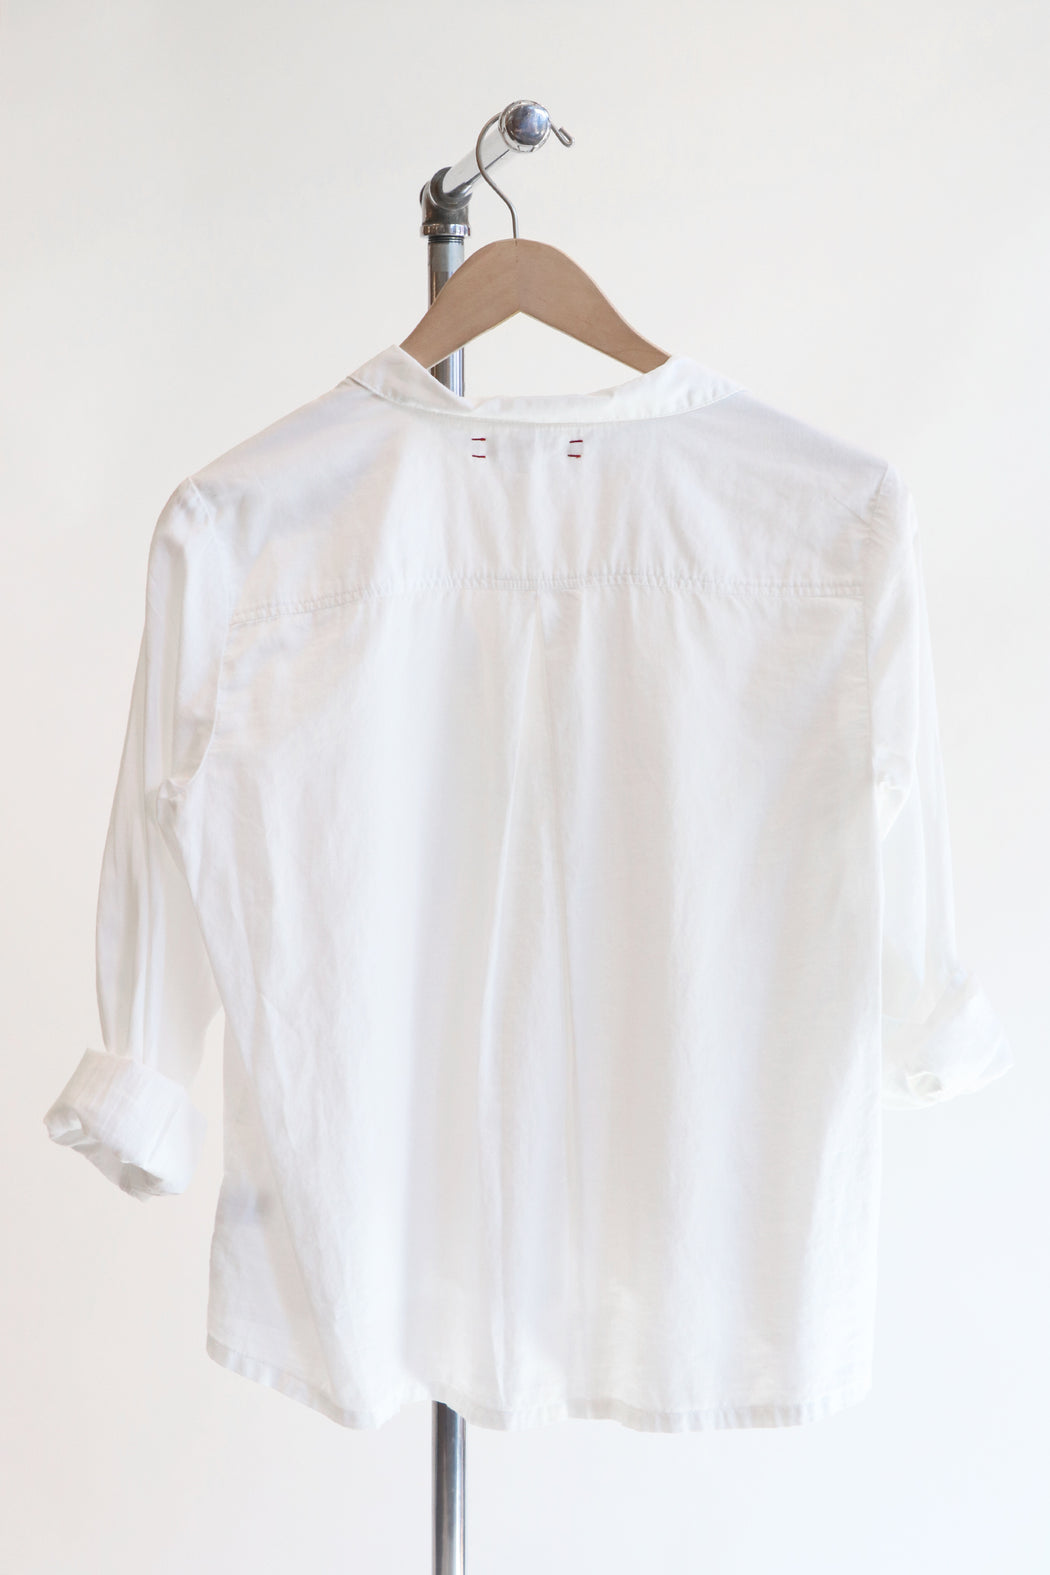 Xirena Blaine Shirt in White Wash